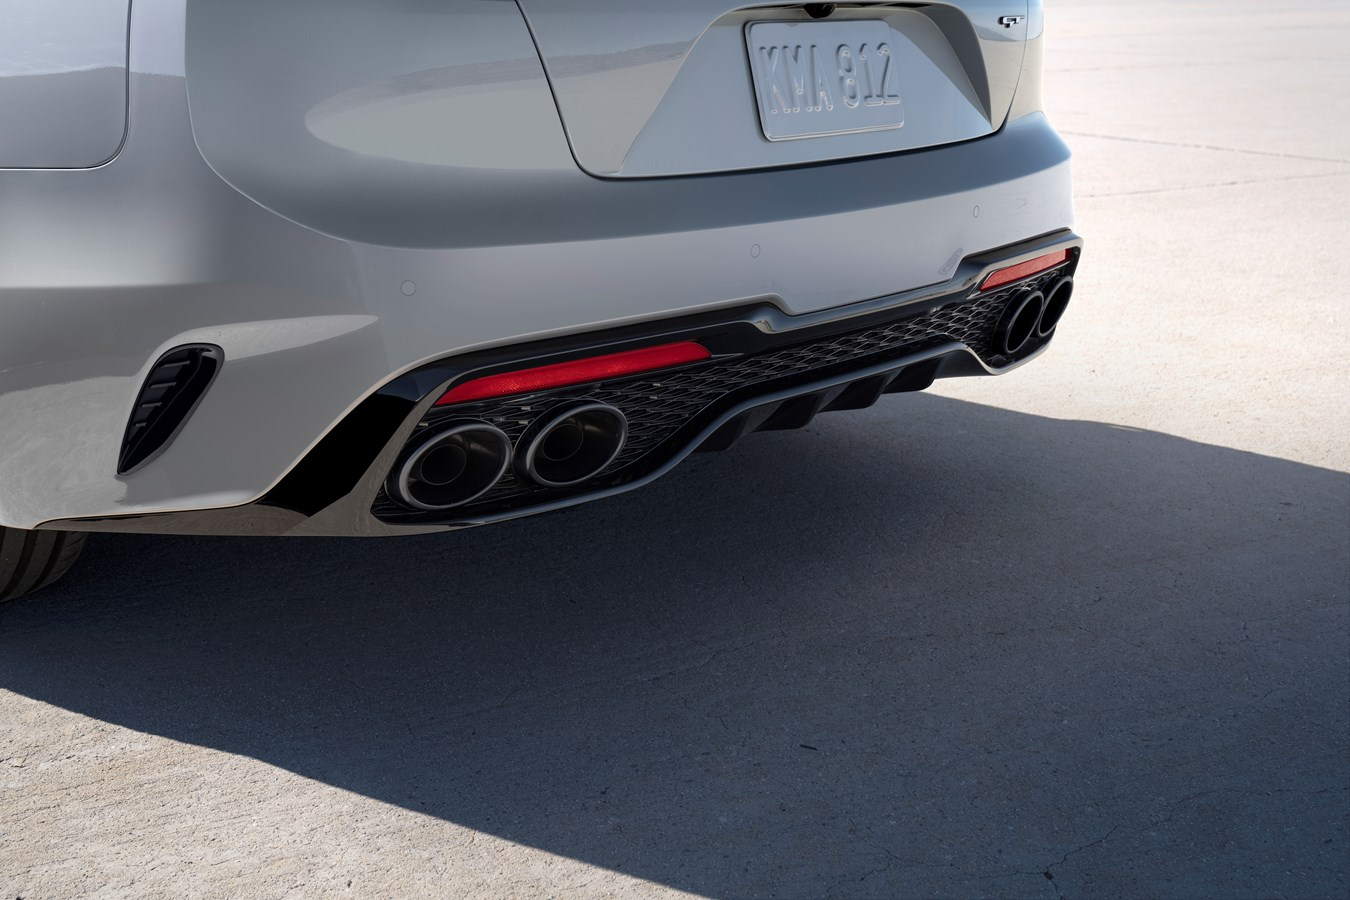 2022 Stinger Scorpion Special Edition rear valence